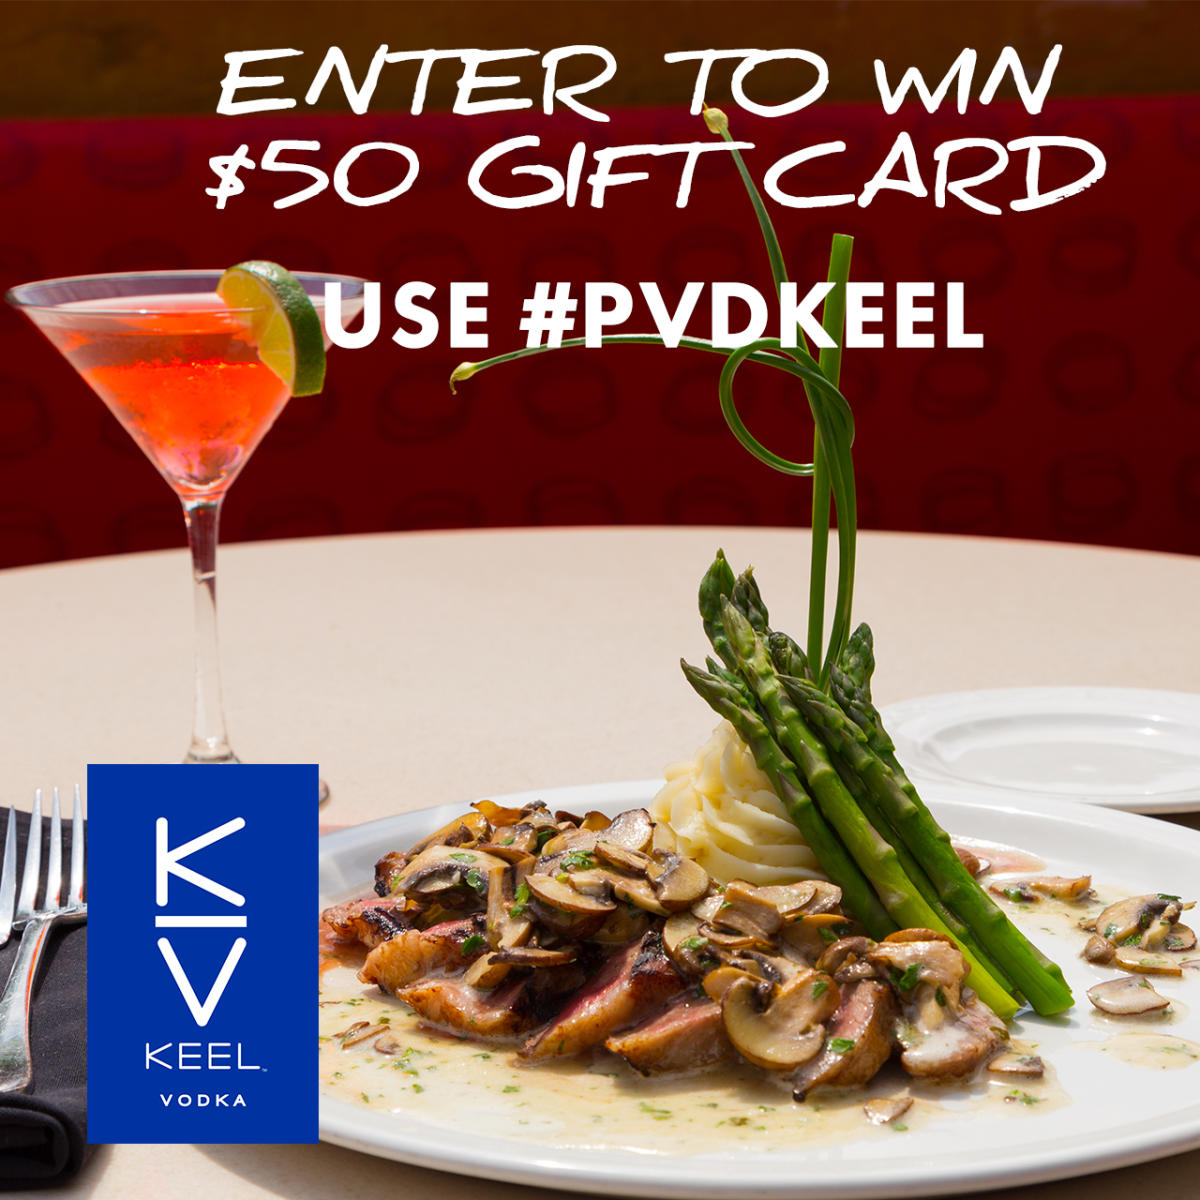 Keel Vodka Instagram Contest